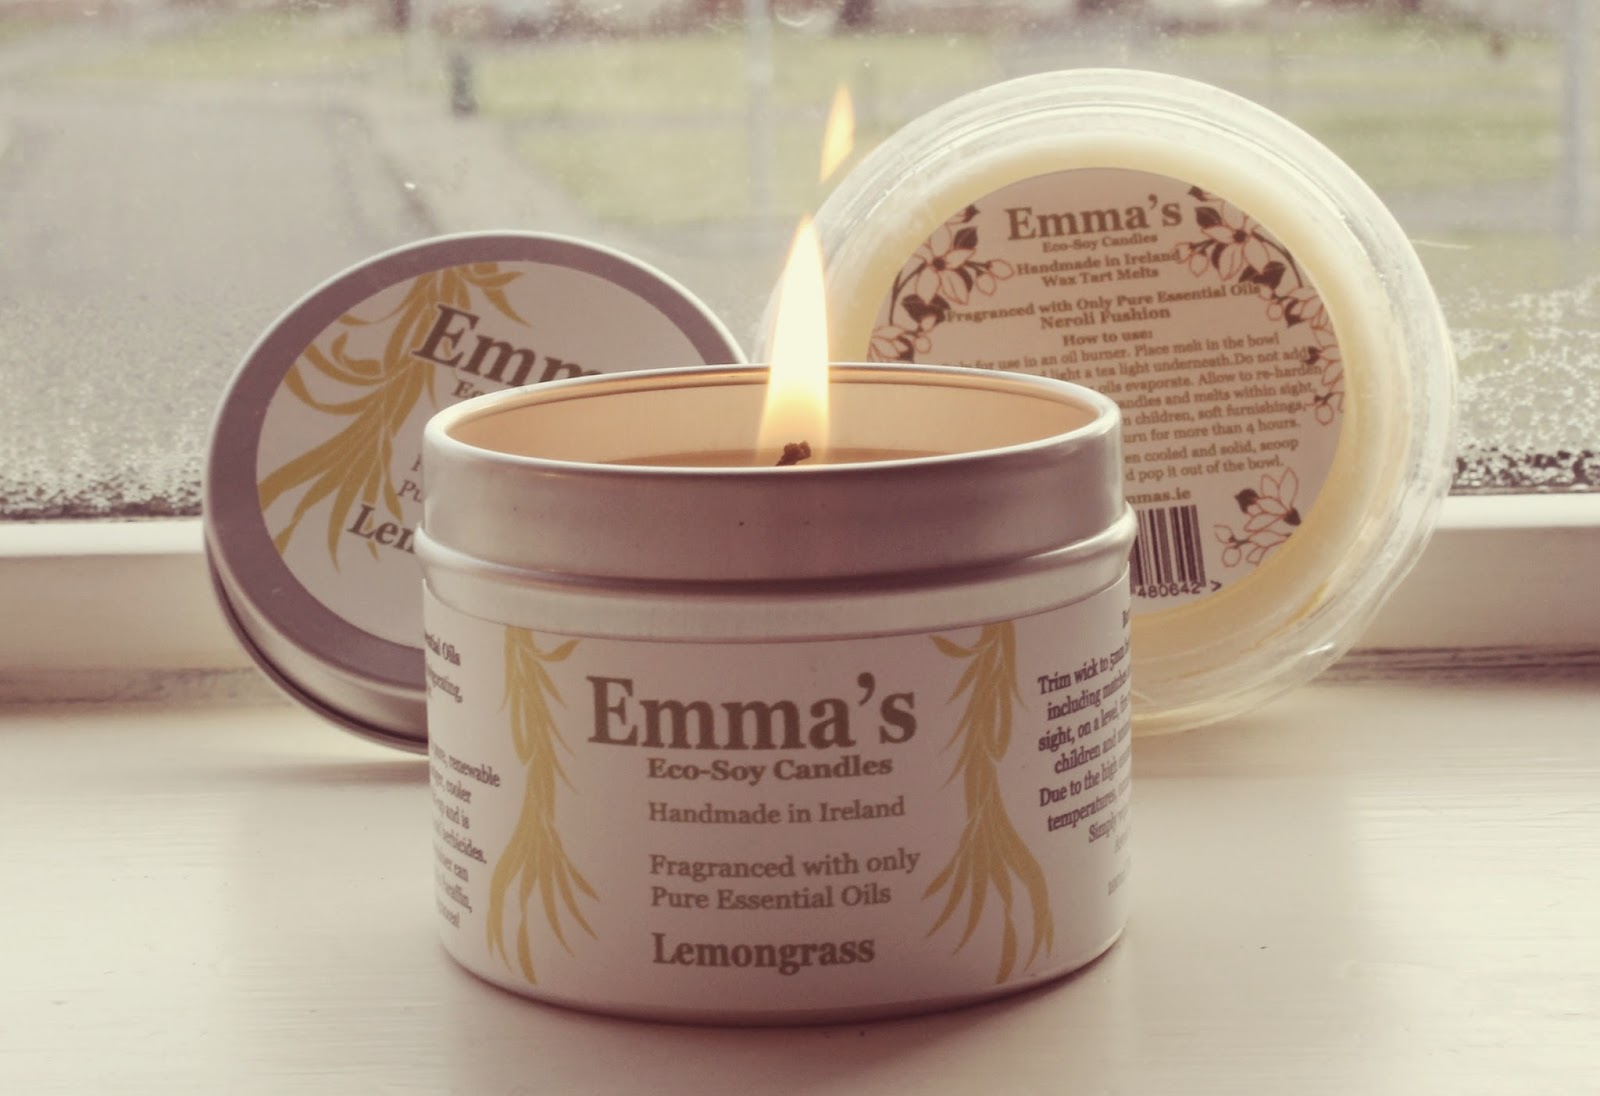 Emma's Eco-Soy Candles lemongrass